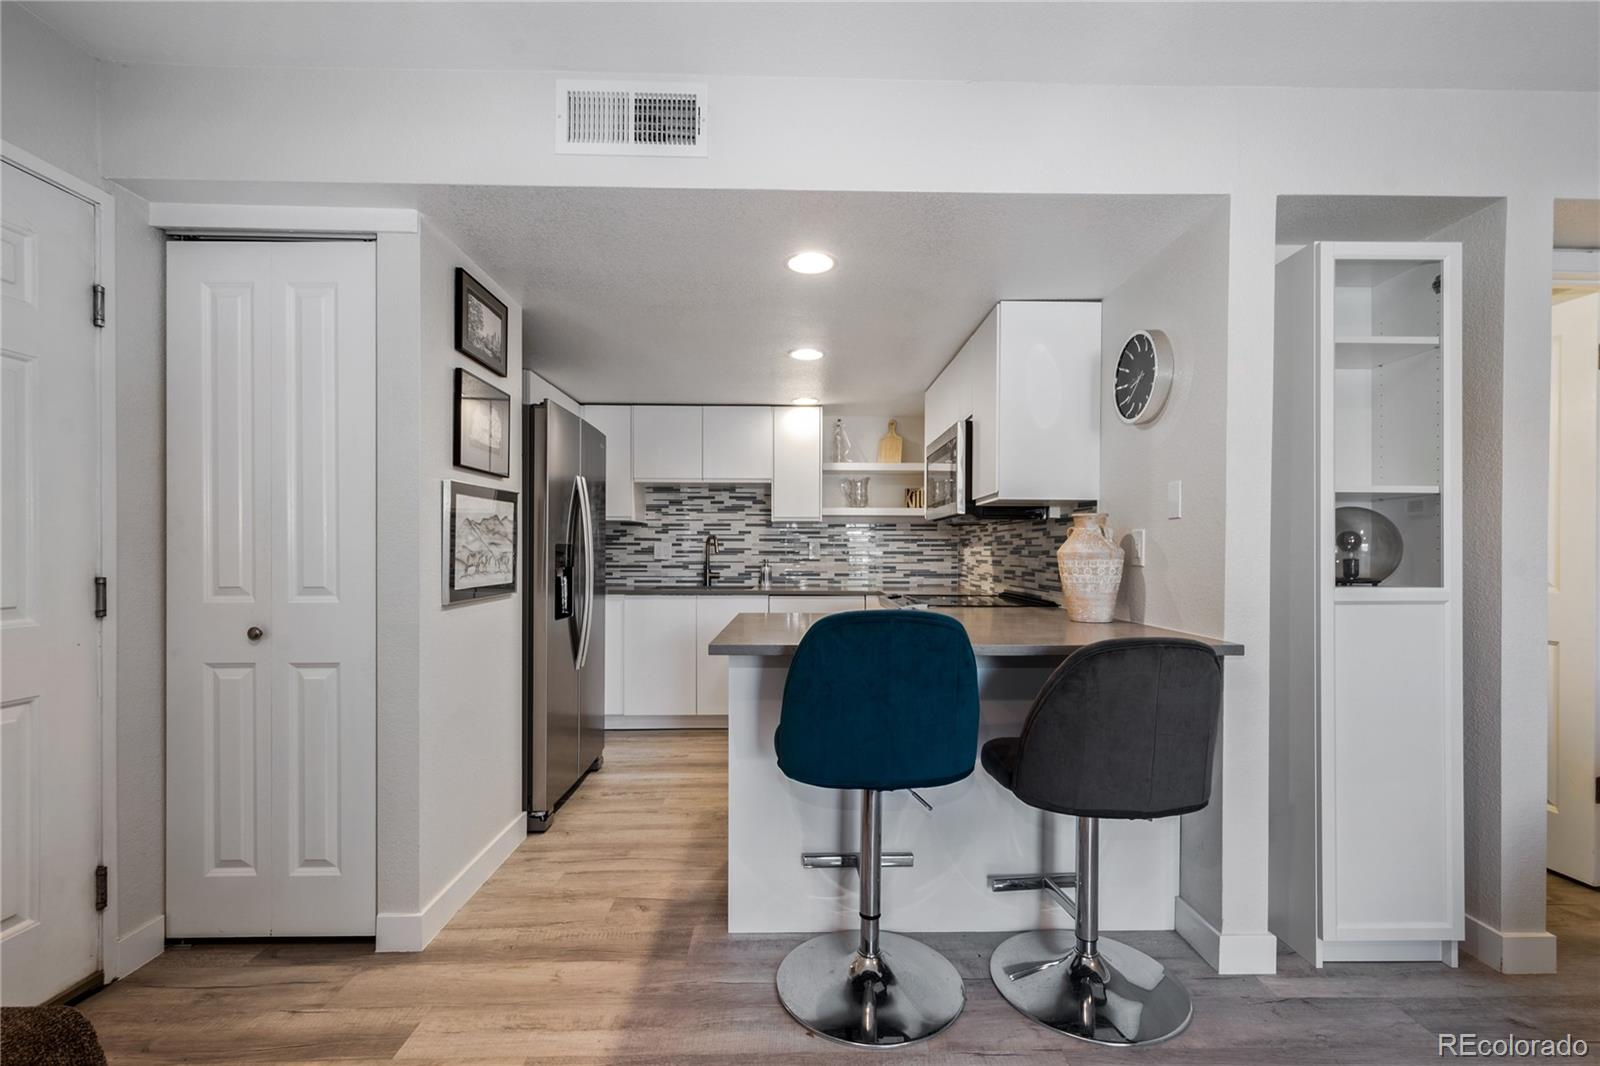 MLS# 7942080 - 1 - 9680 Brentwood Way #101, Westminster, CO 80021